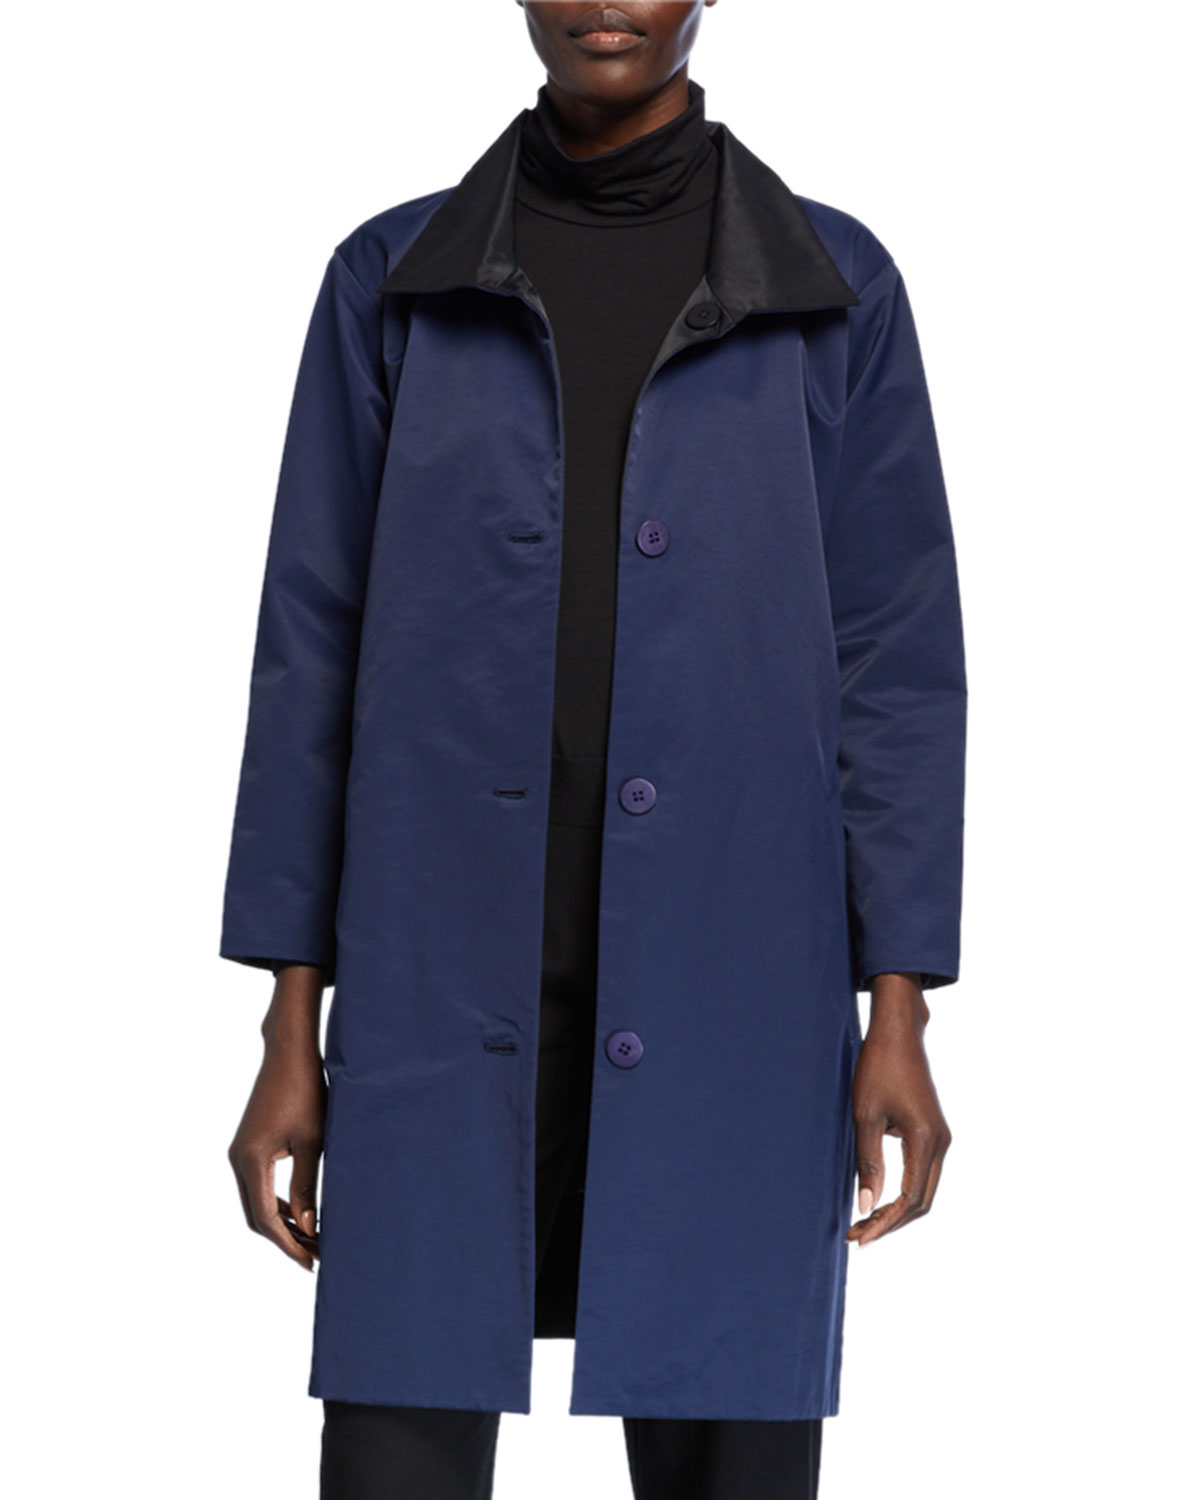 Eileen Fisher Coats PETITE REVERSIBLE BUTTON-FRONT COAT WITH STAND COLLAR